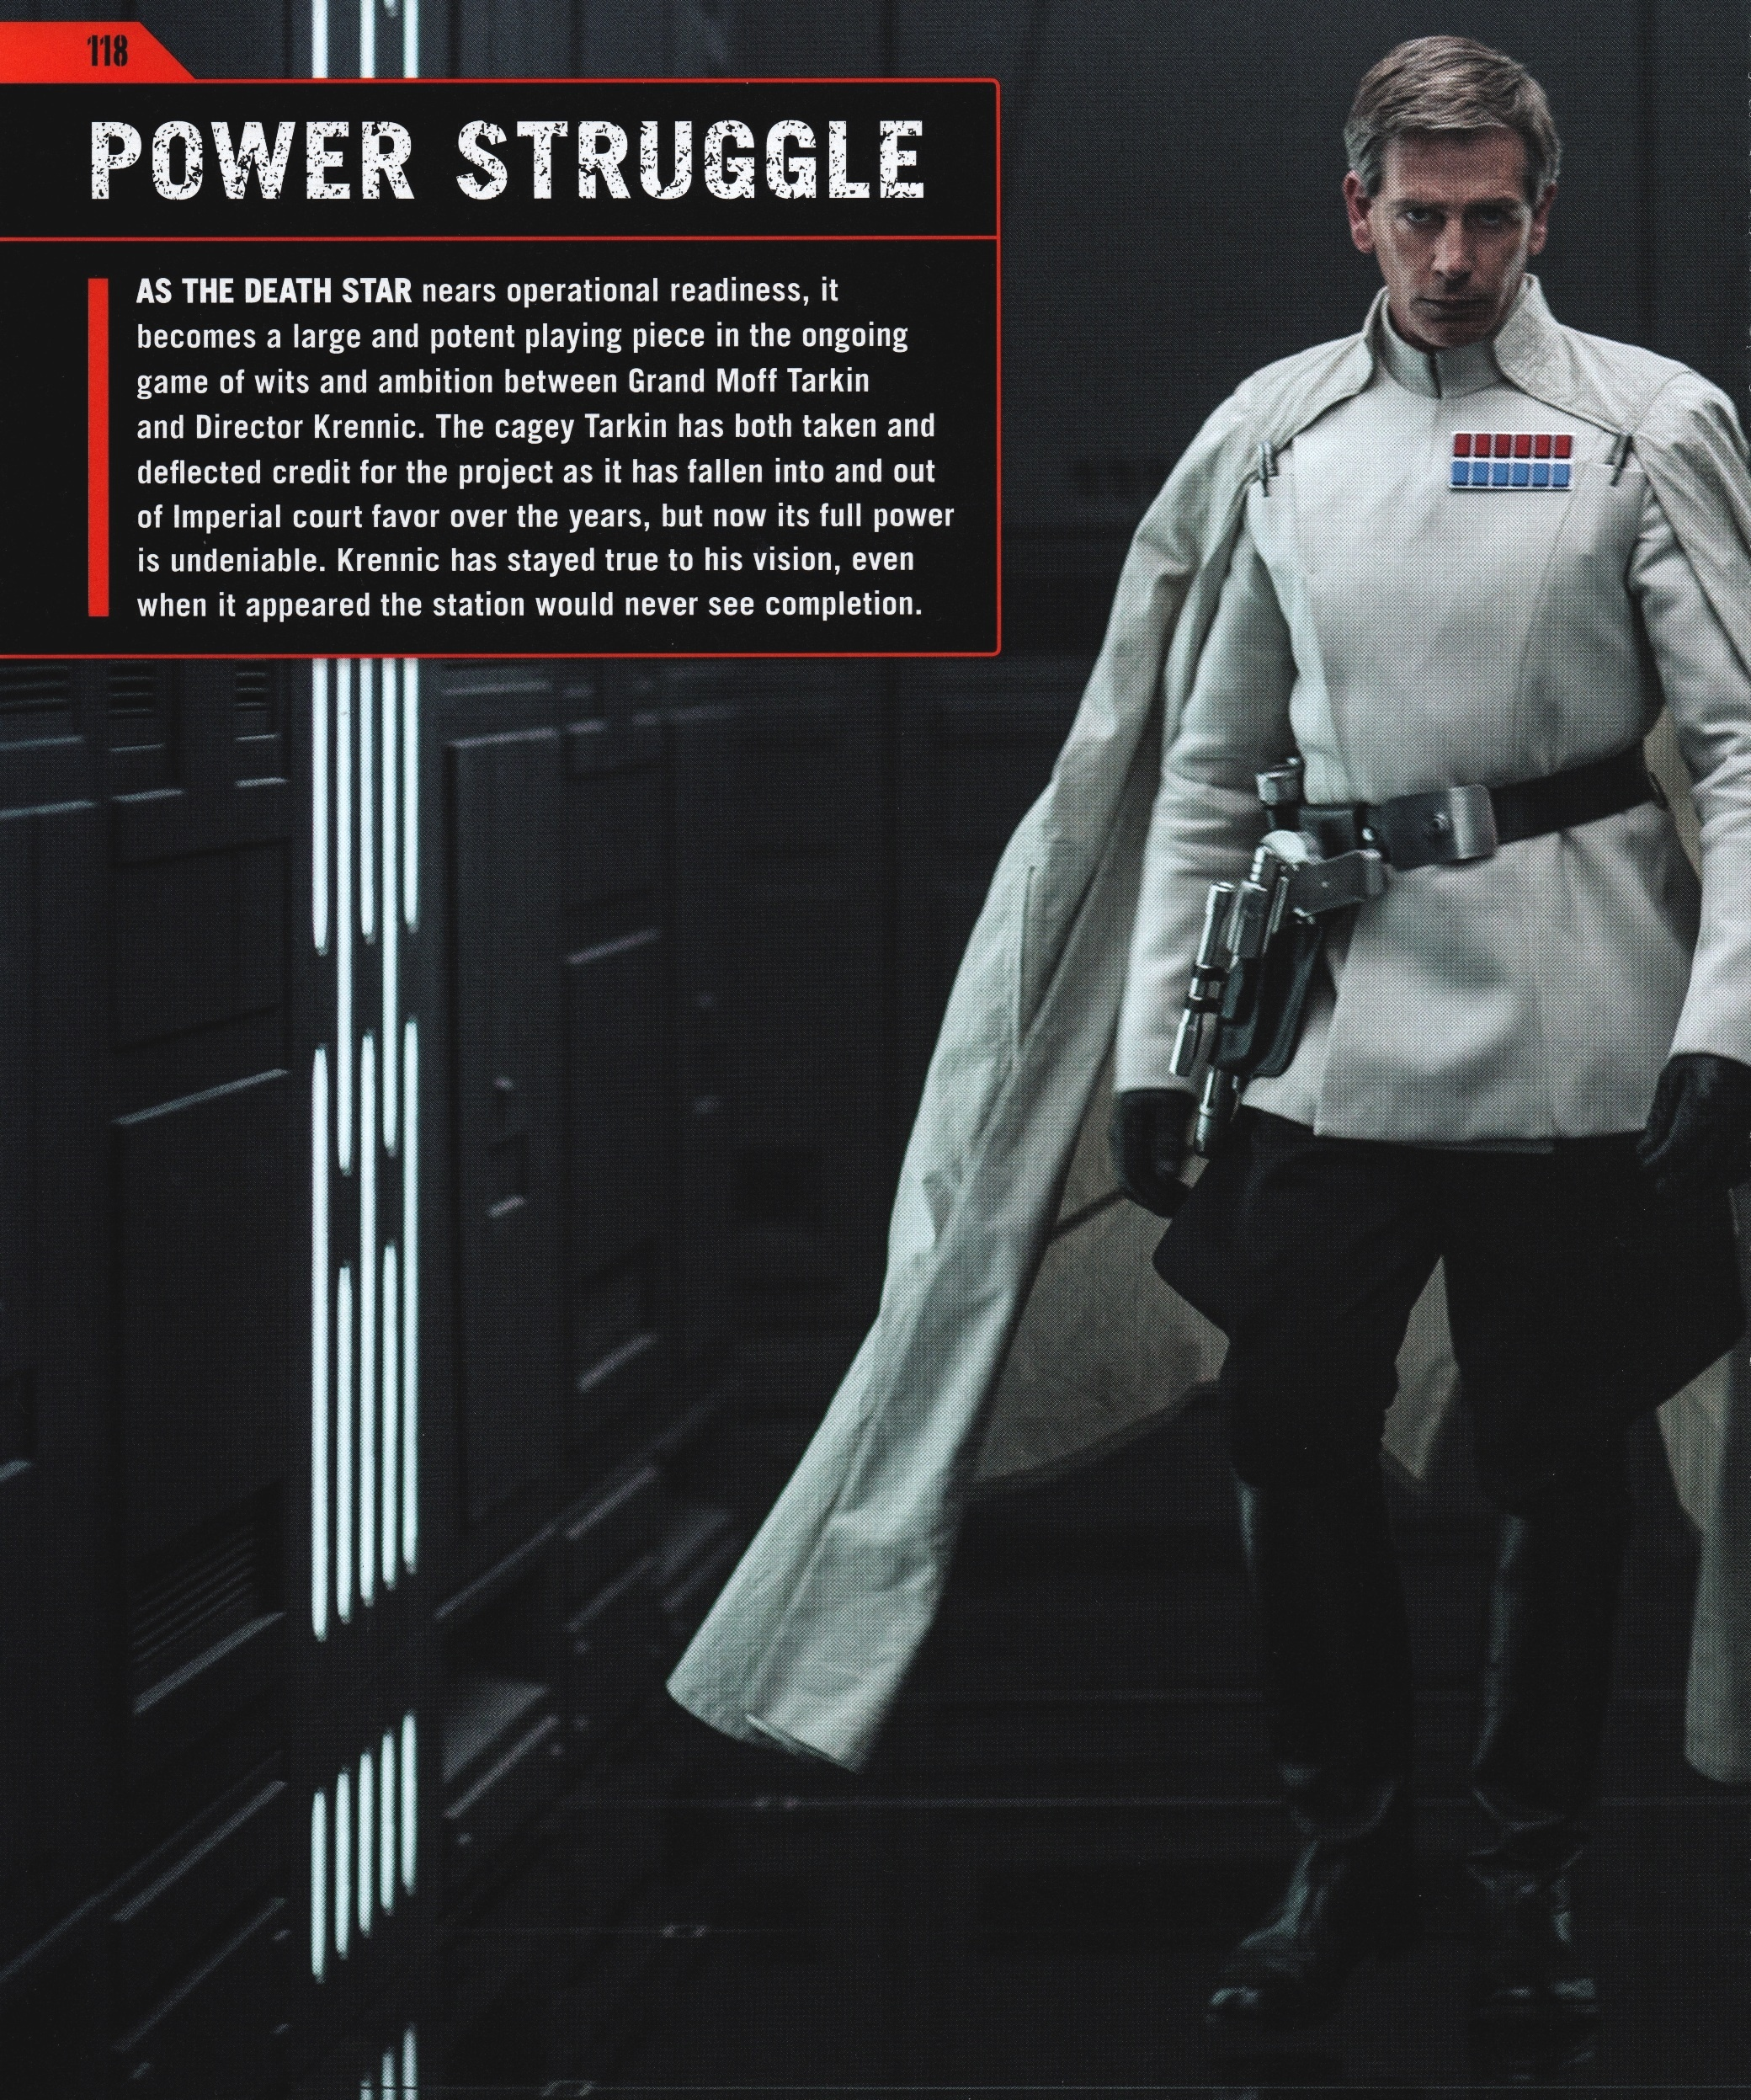 Rogue One Ultimate Visual Guide (b0bafett_Empire) p118